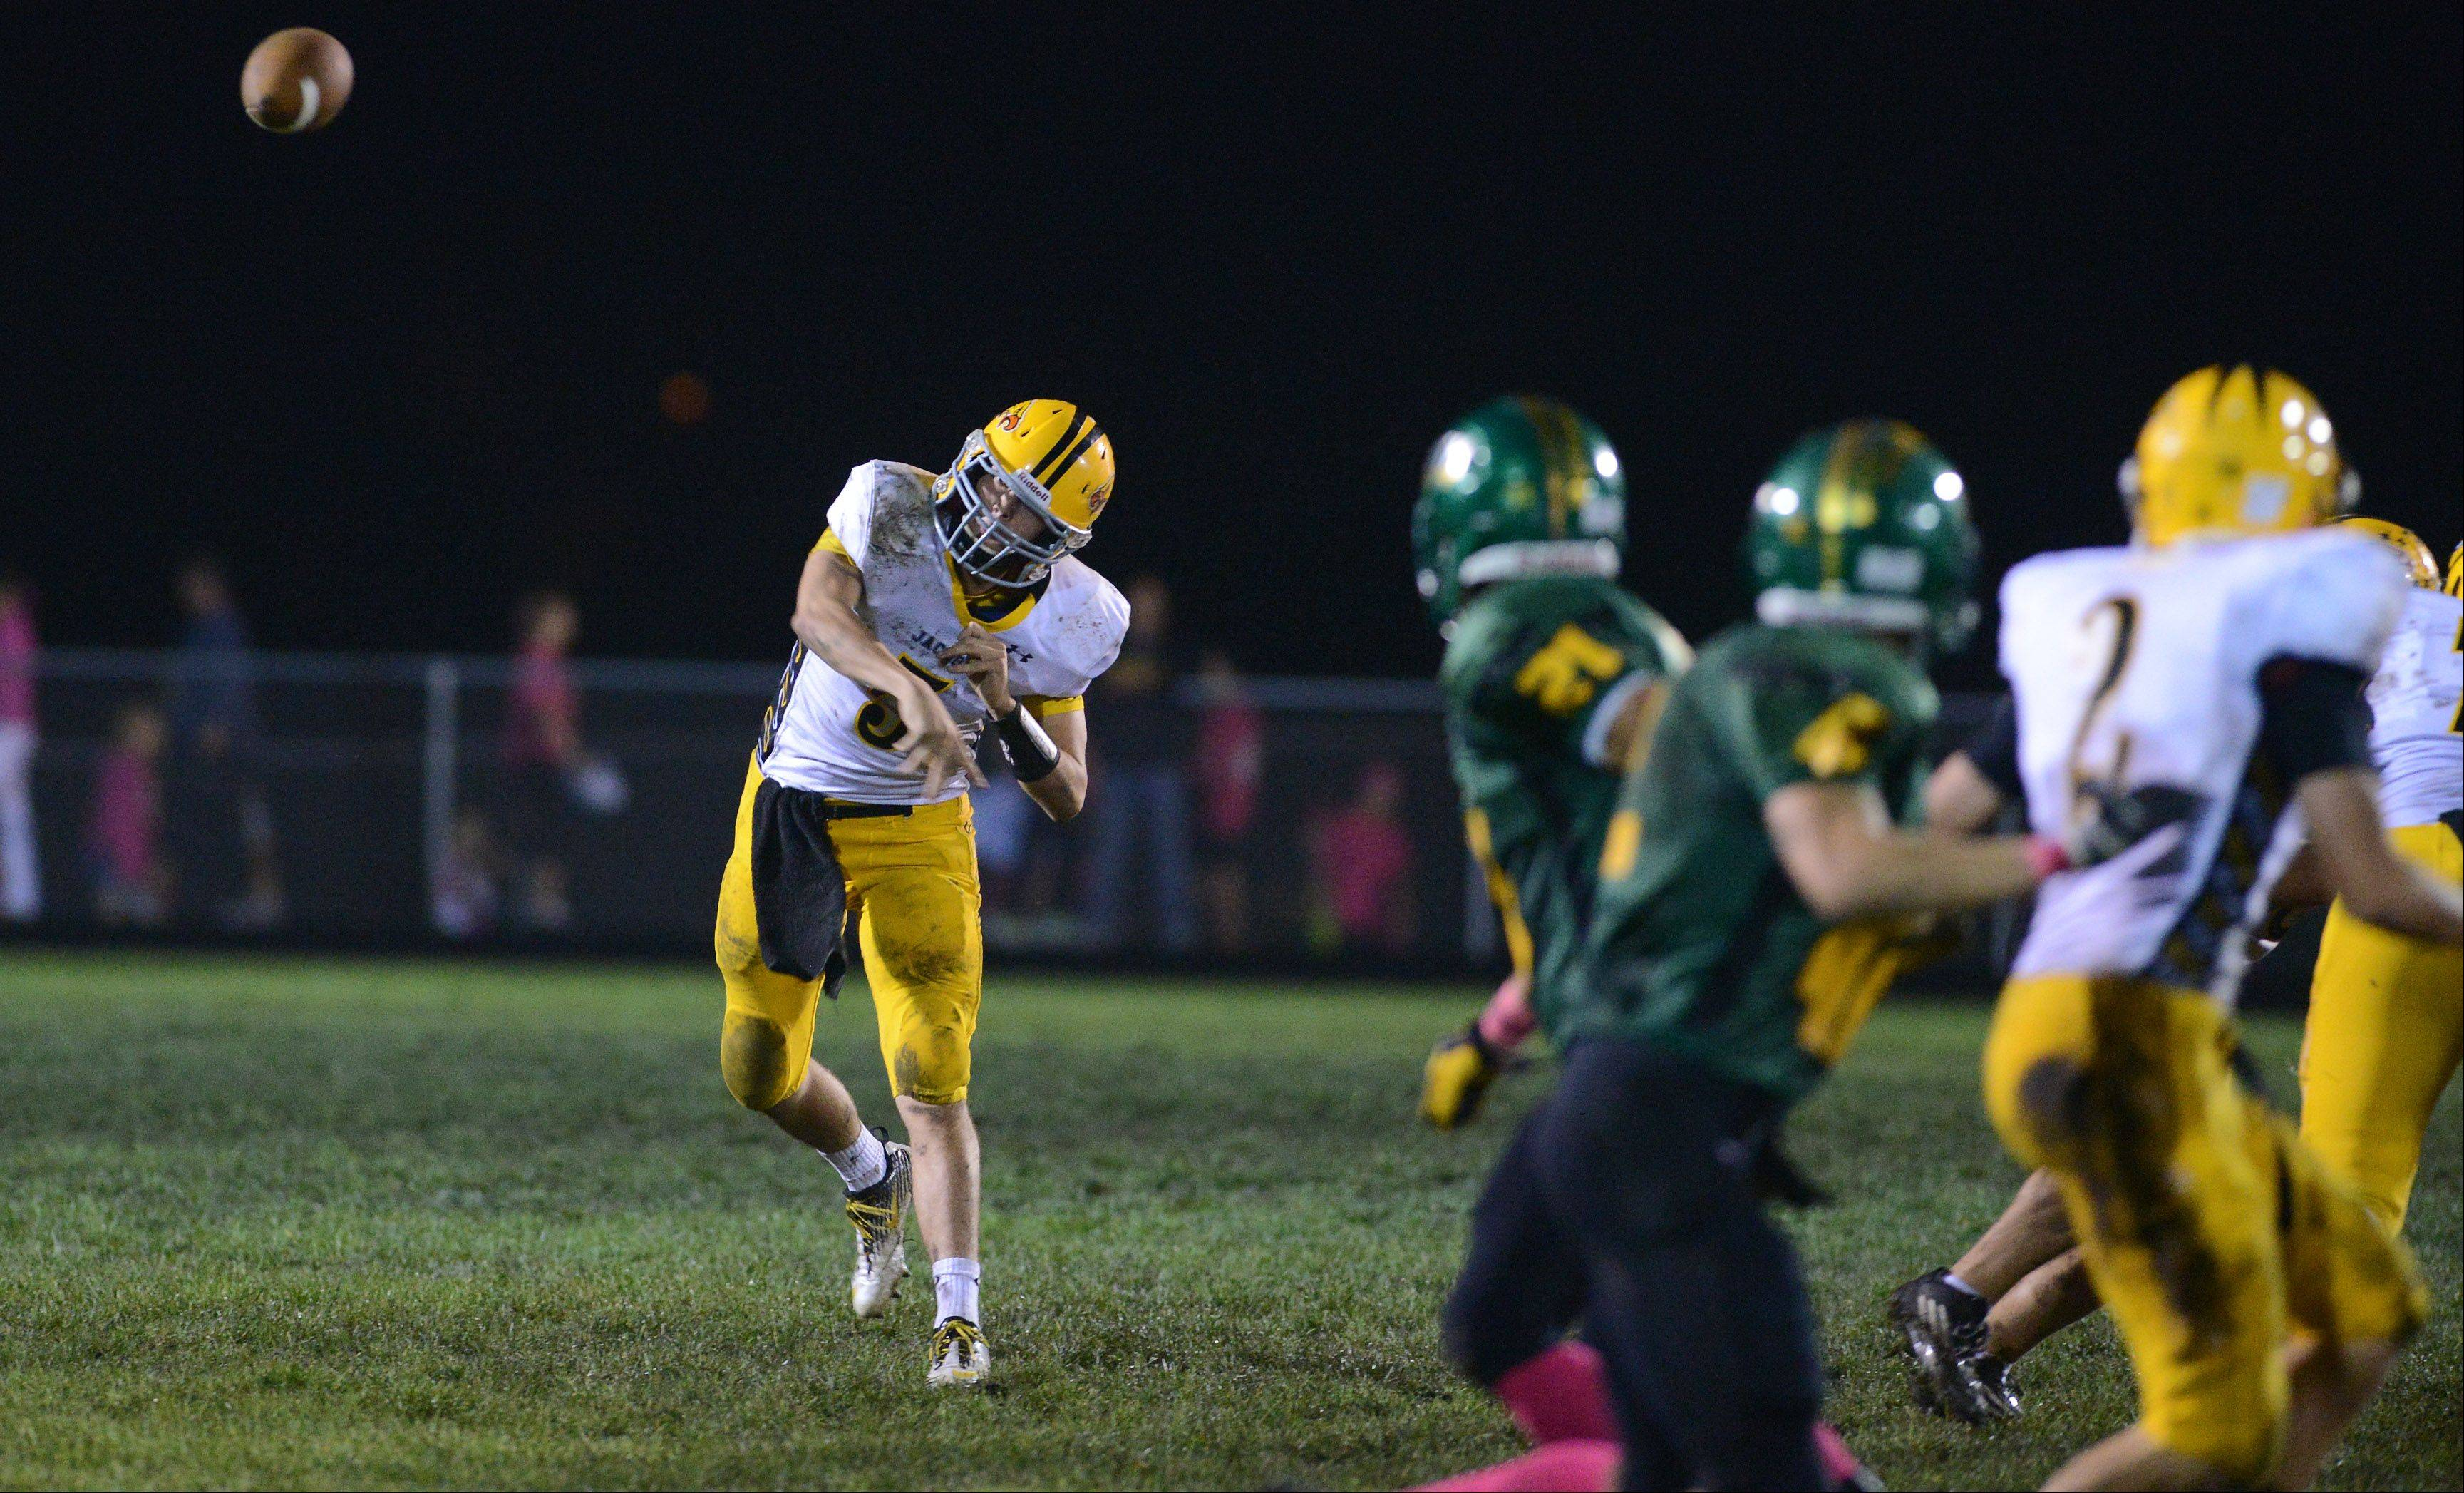 Week six - Images from the Jacobs vs. Crystal Lake South football game Friday, October 4, 2013.